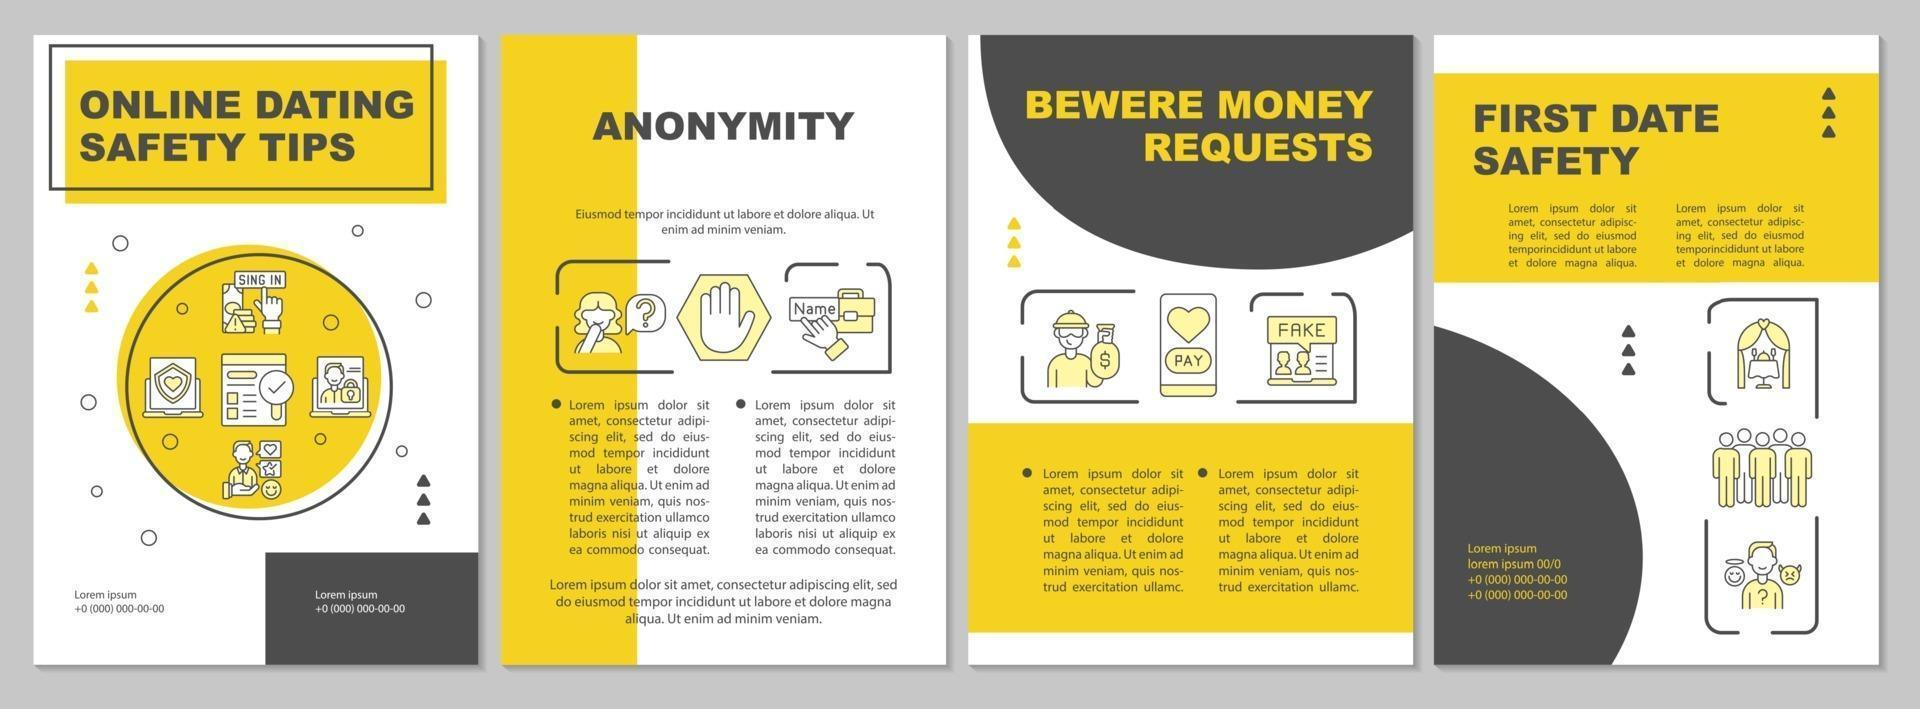 Online dating safety tips brochure template vector